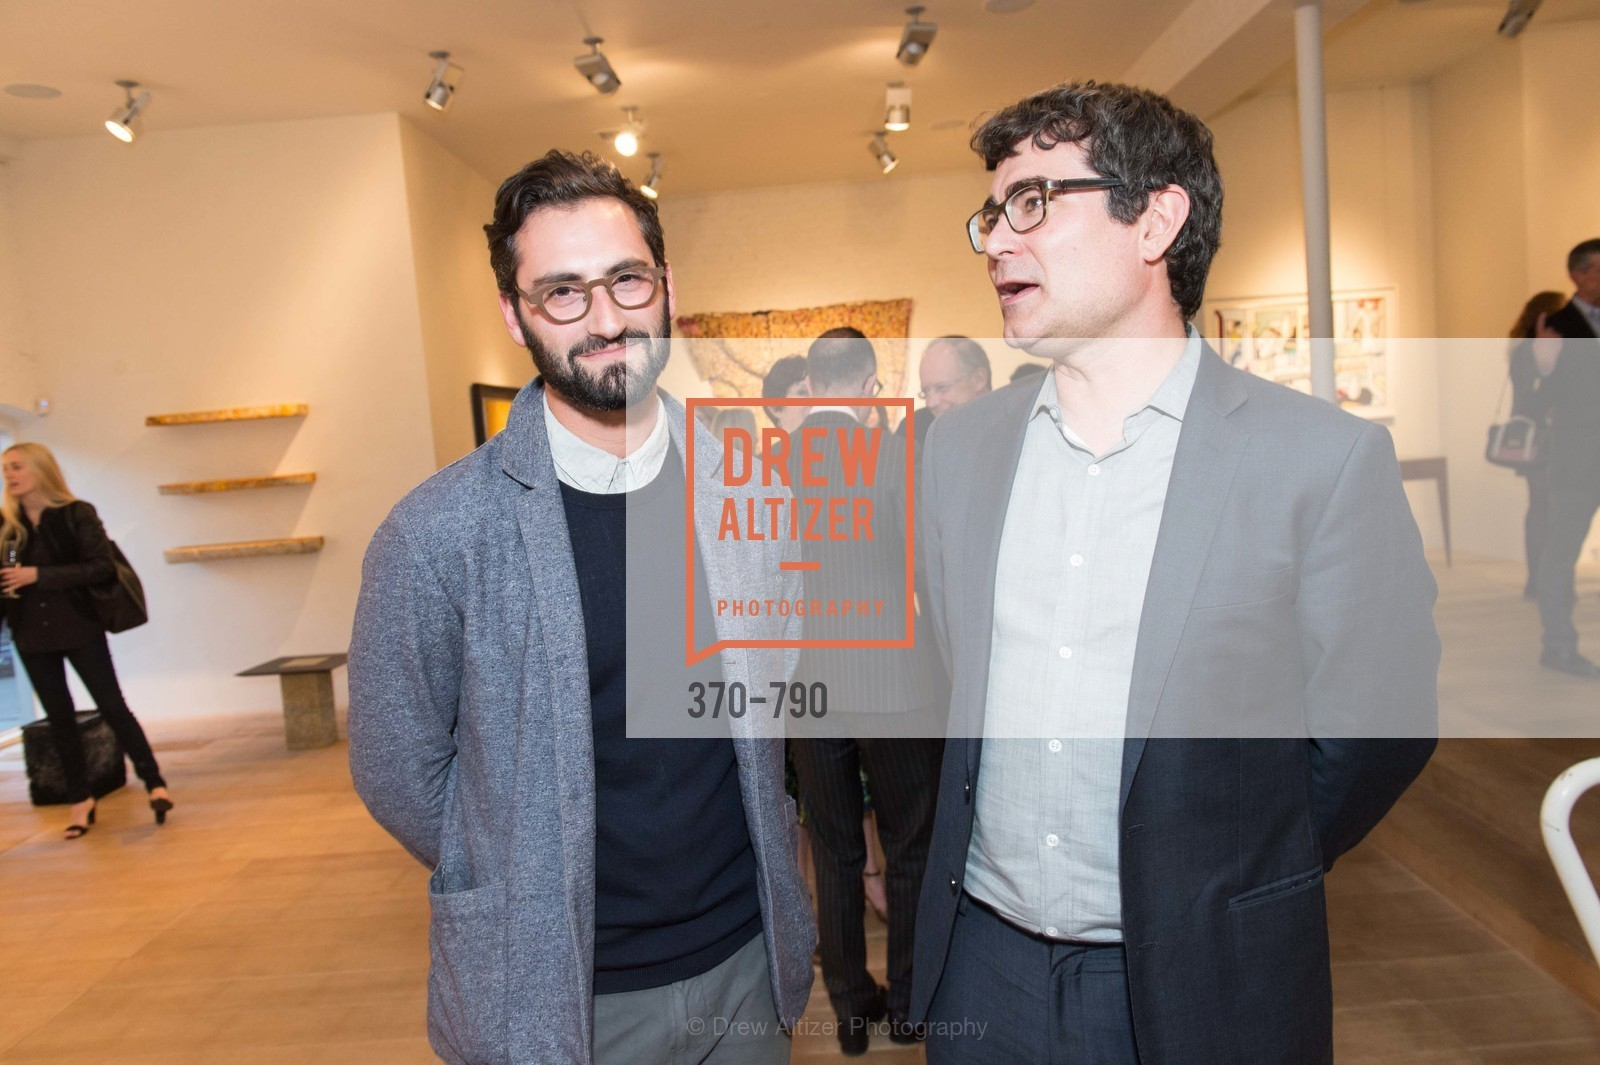 Joseph Becker, Alec Hathaway, Post War and Contemporary Preview at HEDGE GALLERY, US, April 15th, 2015,Drew Altizer, Drew Altizer Photography, full-service agency, private events, San Francisco photographer, photographer california